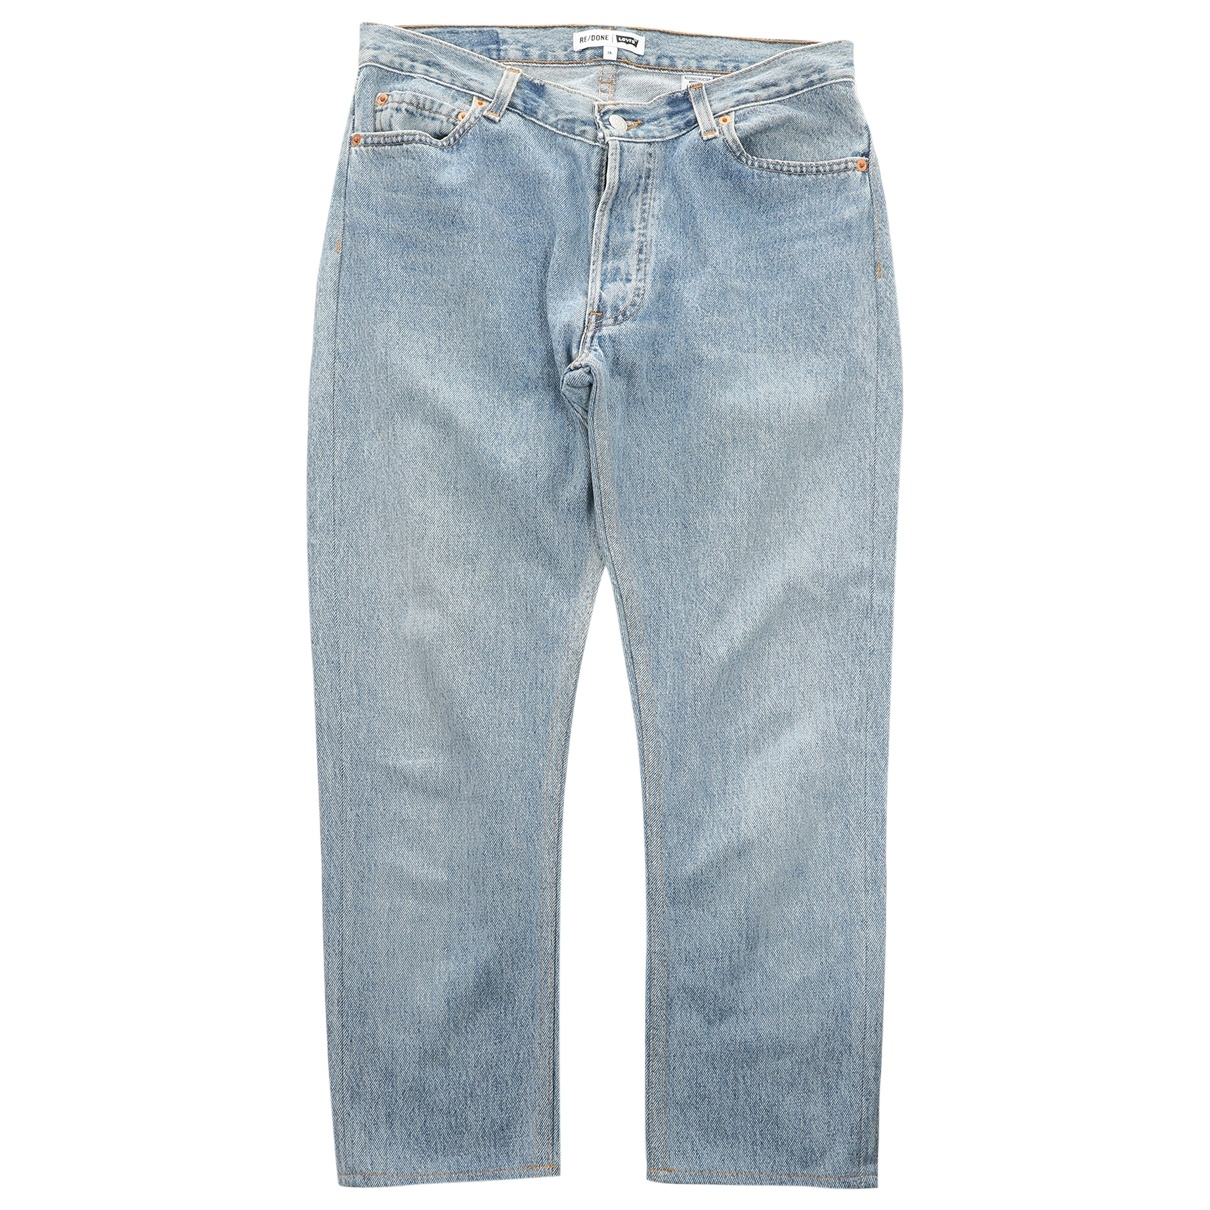 Re/done X Levi's \N Blue Denim - Jeans Jeans for Women 26 US